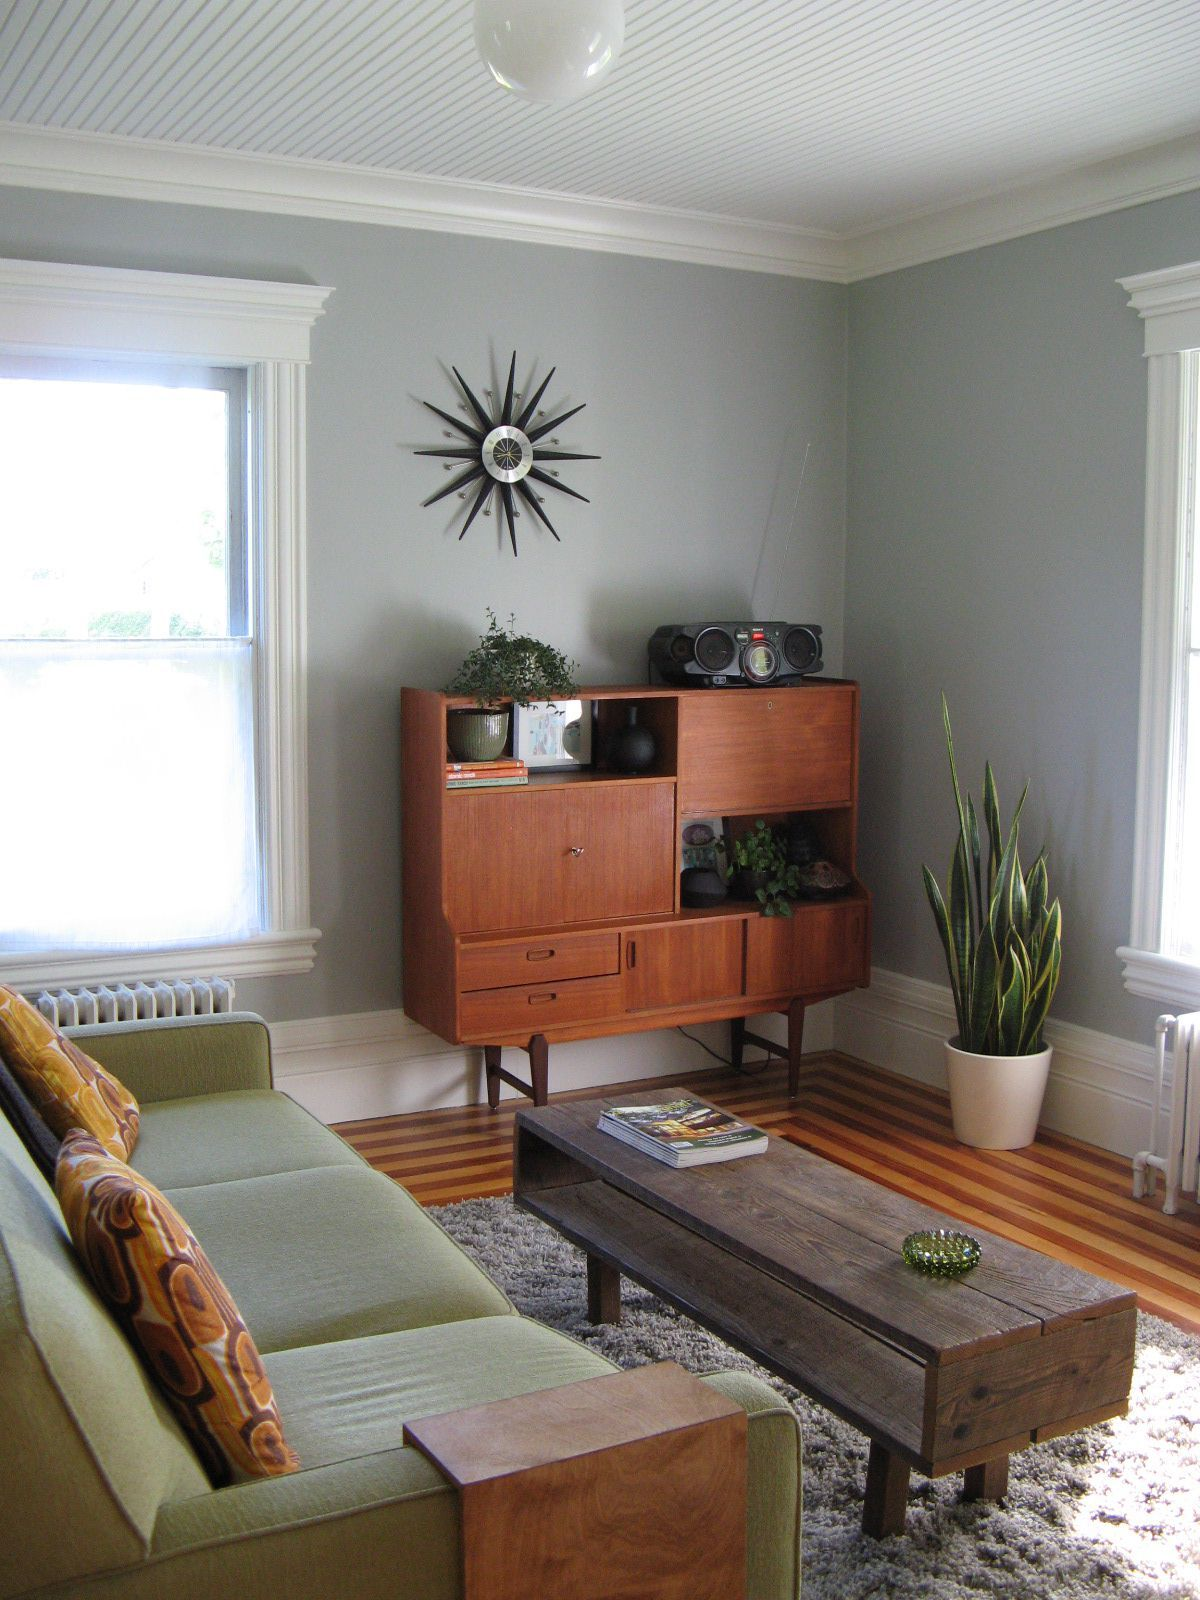 How To Lay Out A Small Living Room Midcityeast Midcityeast